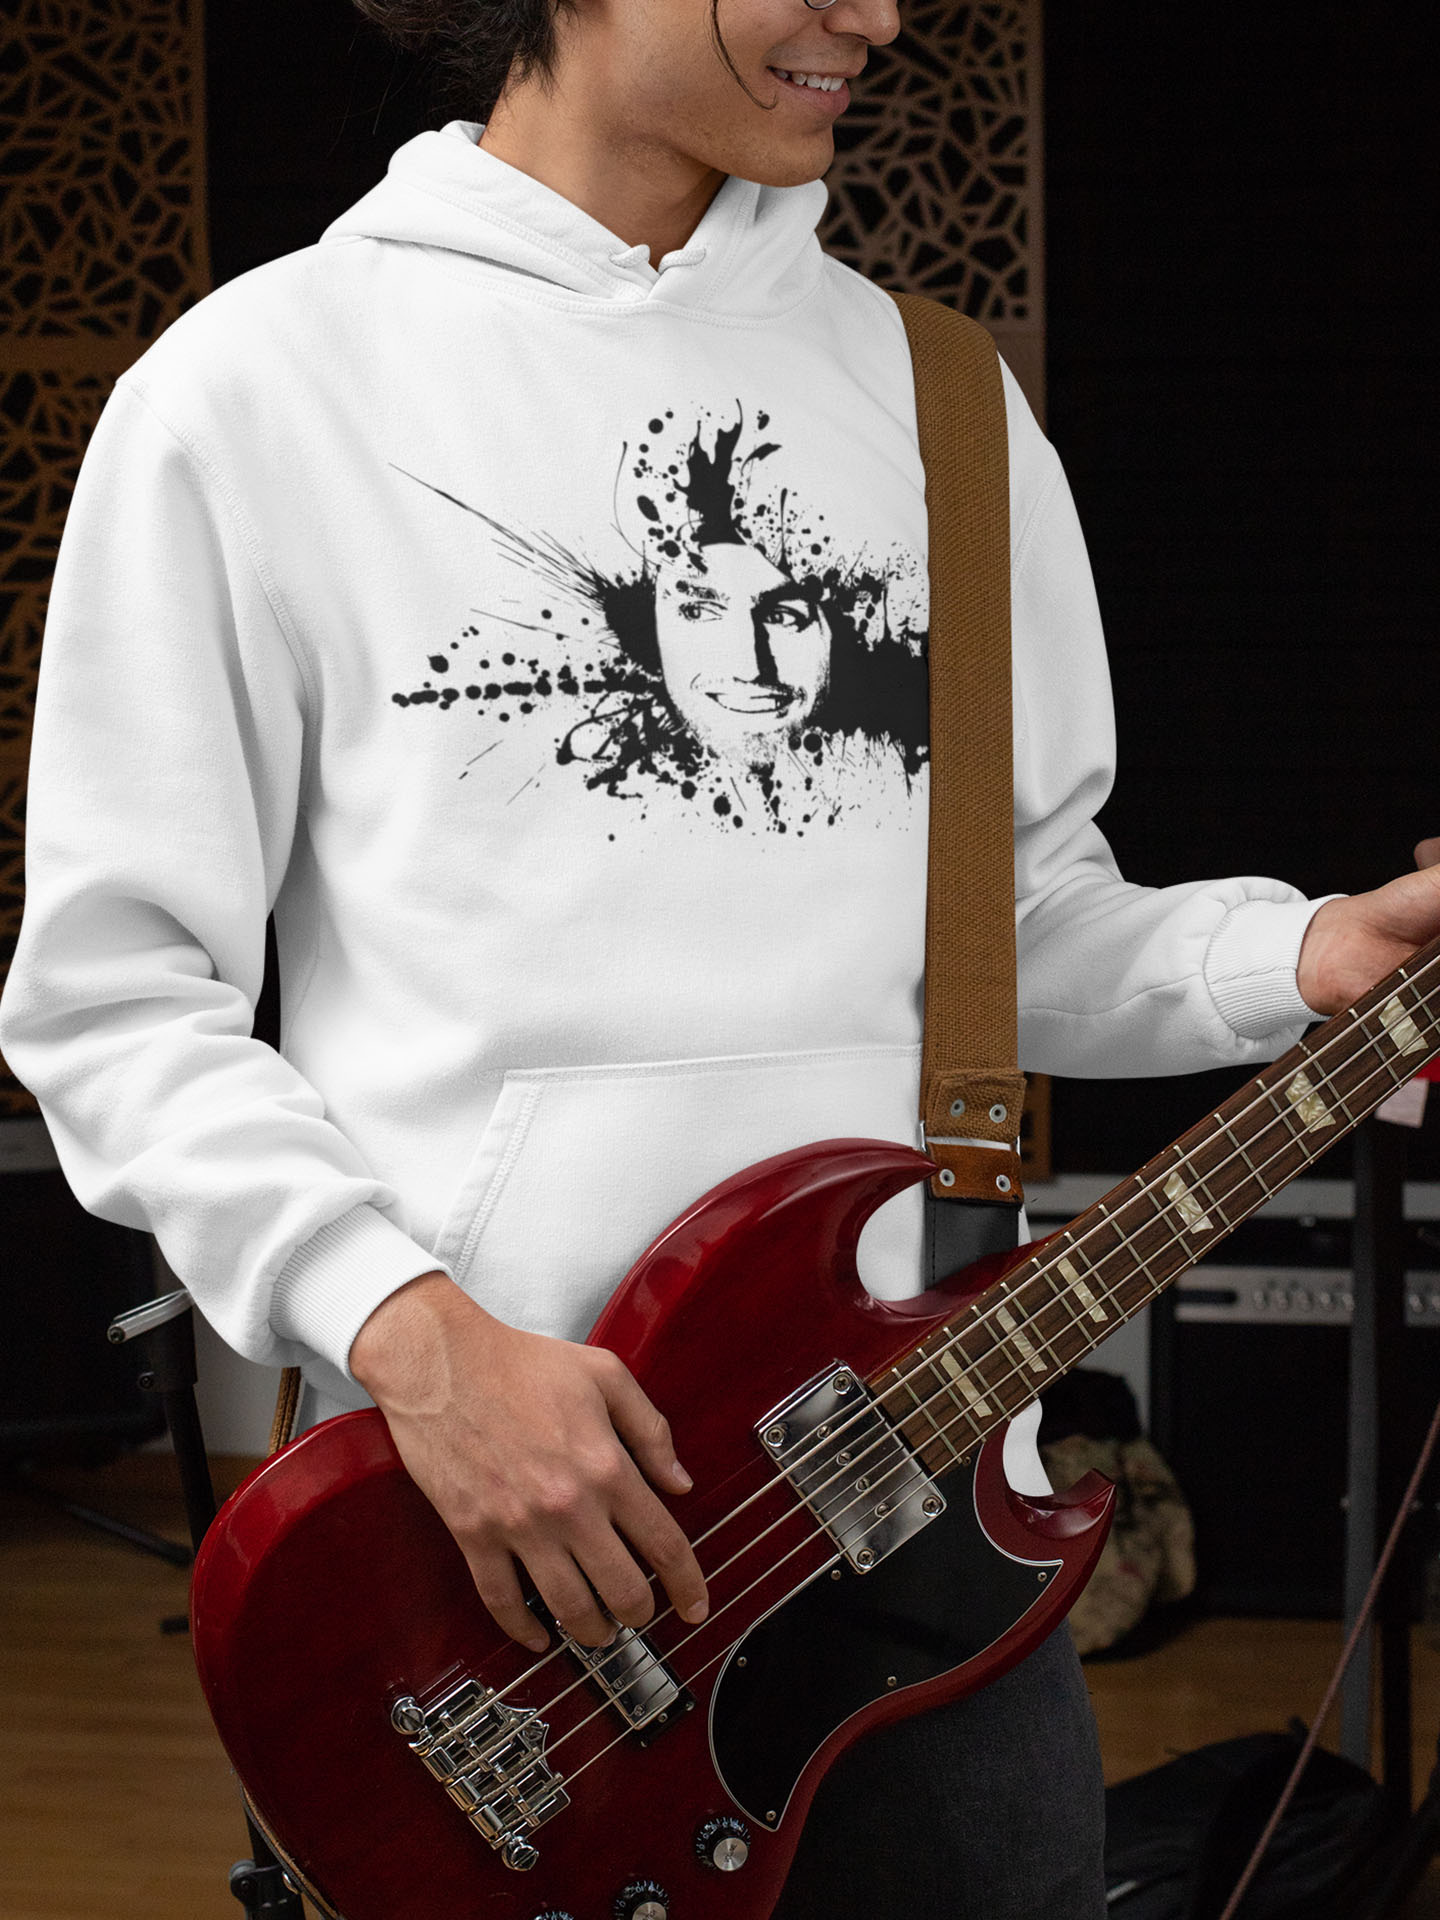 Spredshirt-Prints-Trailfire_0038_hoodie-mockup-of-a-cool-man-playing-bass-guitar-33325